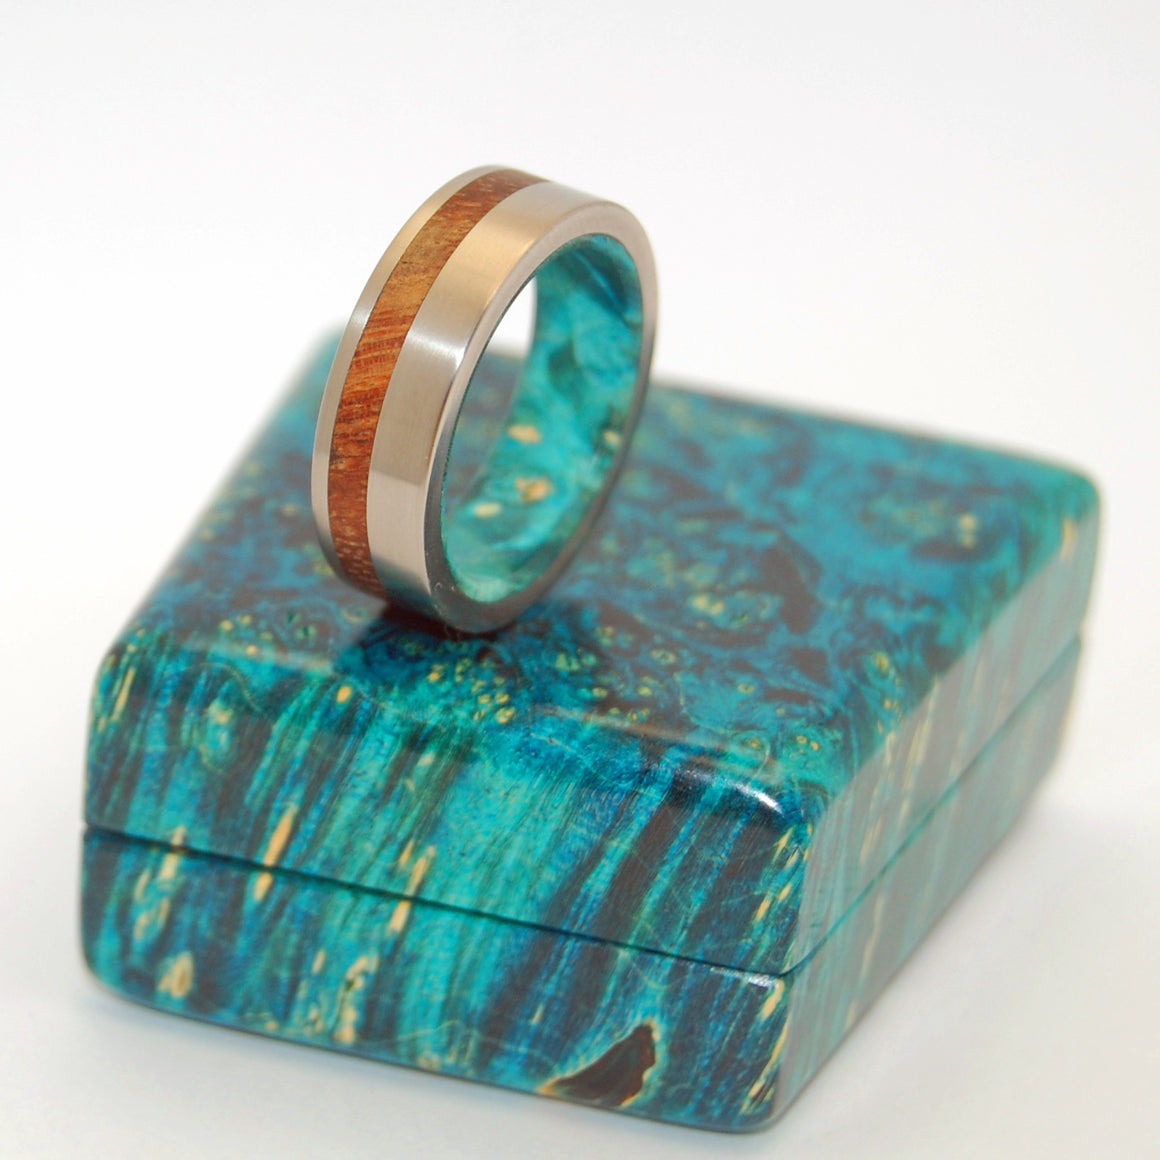 FURTHER THAN STARS | Hawaiian Koa Wood & Turquoise Box Elder - Wooden Wedding Rings - Minter and Richter Designs